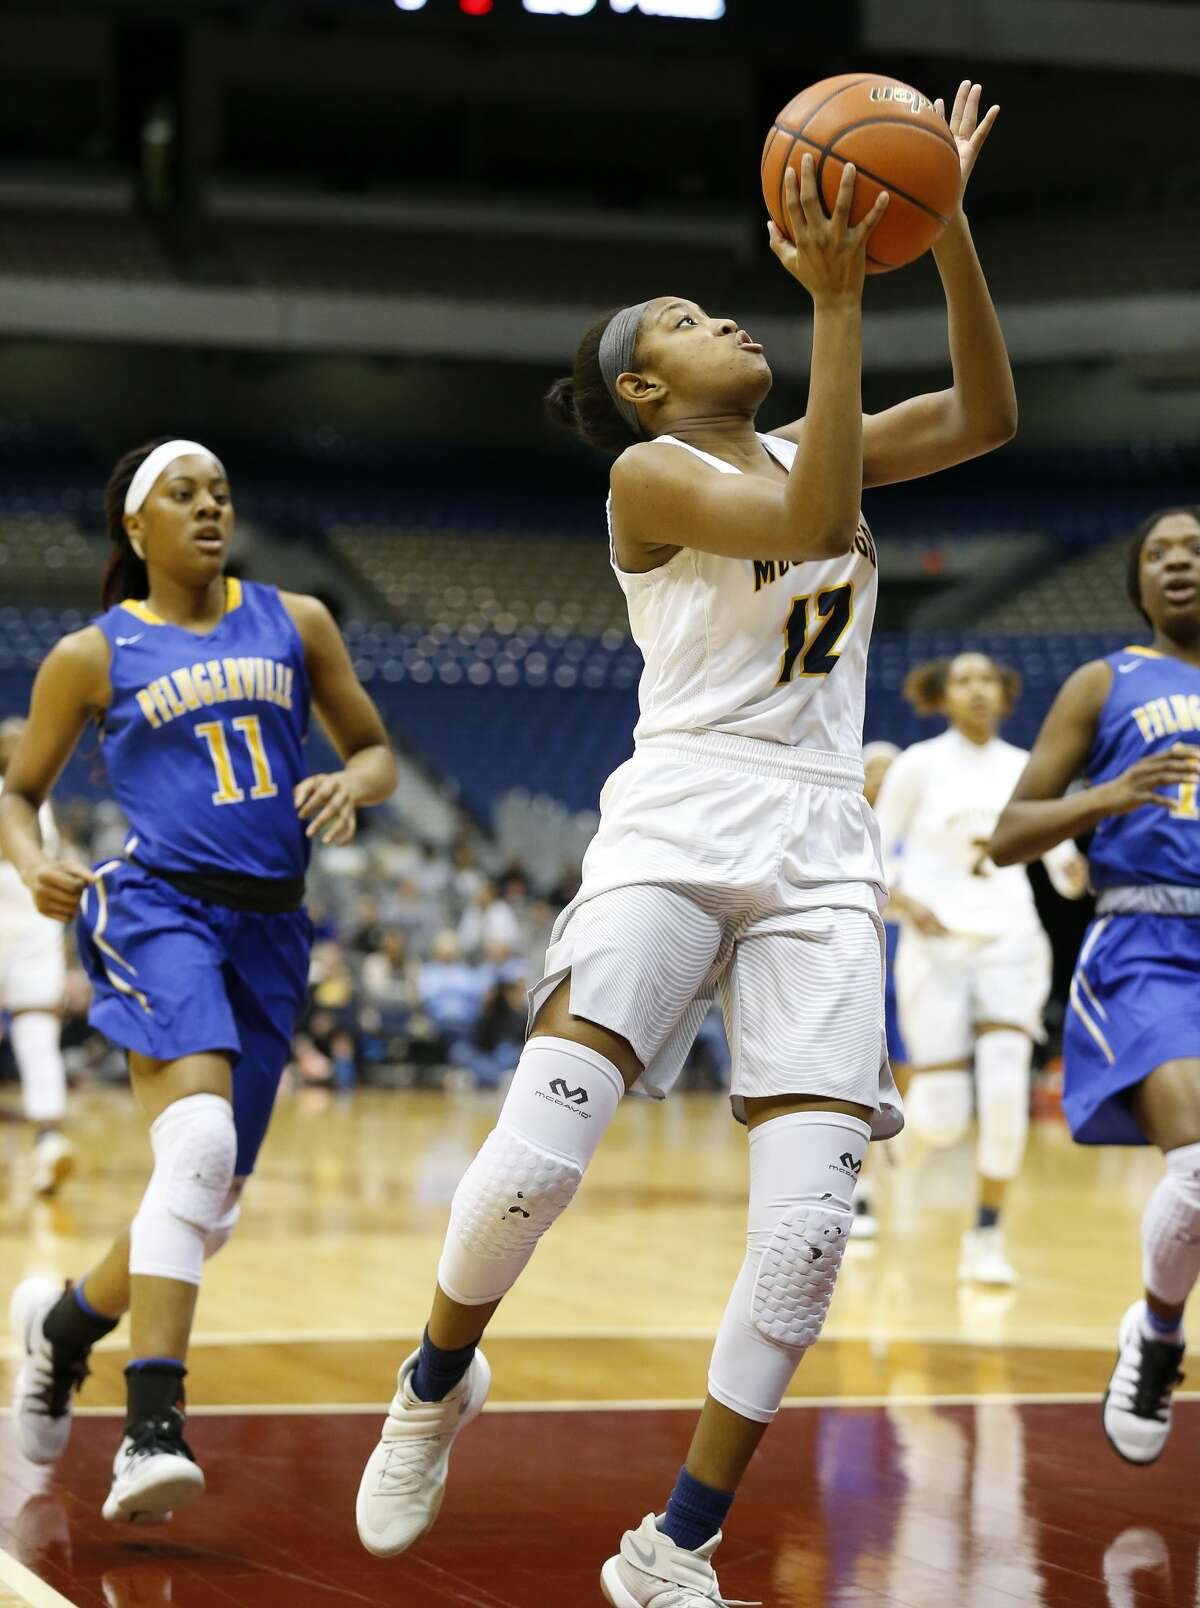 Houston Cypress Ranch?'s Shadiya Thomas (12) goes up for a shot against Pflugerville?'s Britney Onyeje (11) in the UIL Girls Class 6A State Semifinal basketball game at the Alamodome in San Antonio on Friday, Mar. 3, 2017. Houston Cypress Ranch defeated Pflugerville, 70-53, to advance to the state finals on Saturday. (Kin Man Hui/San Antonio Express-News)